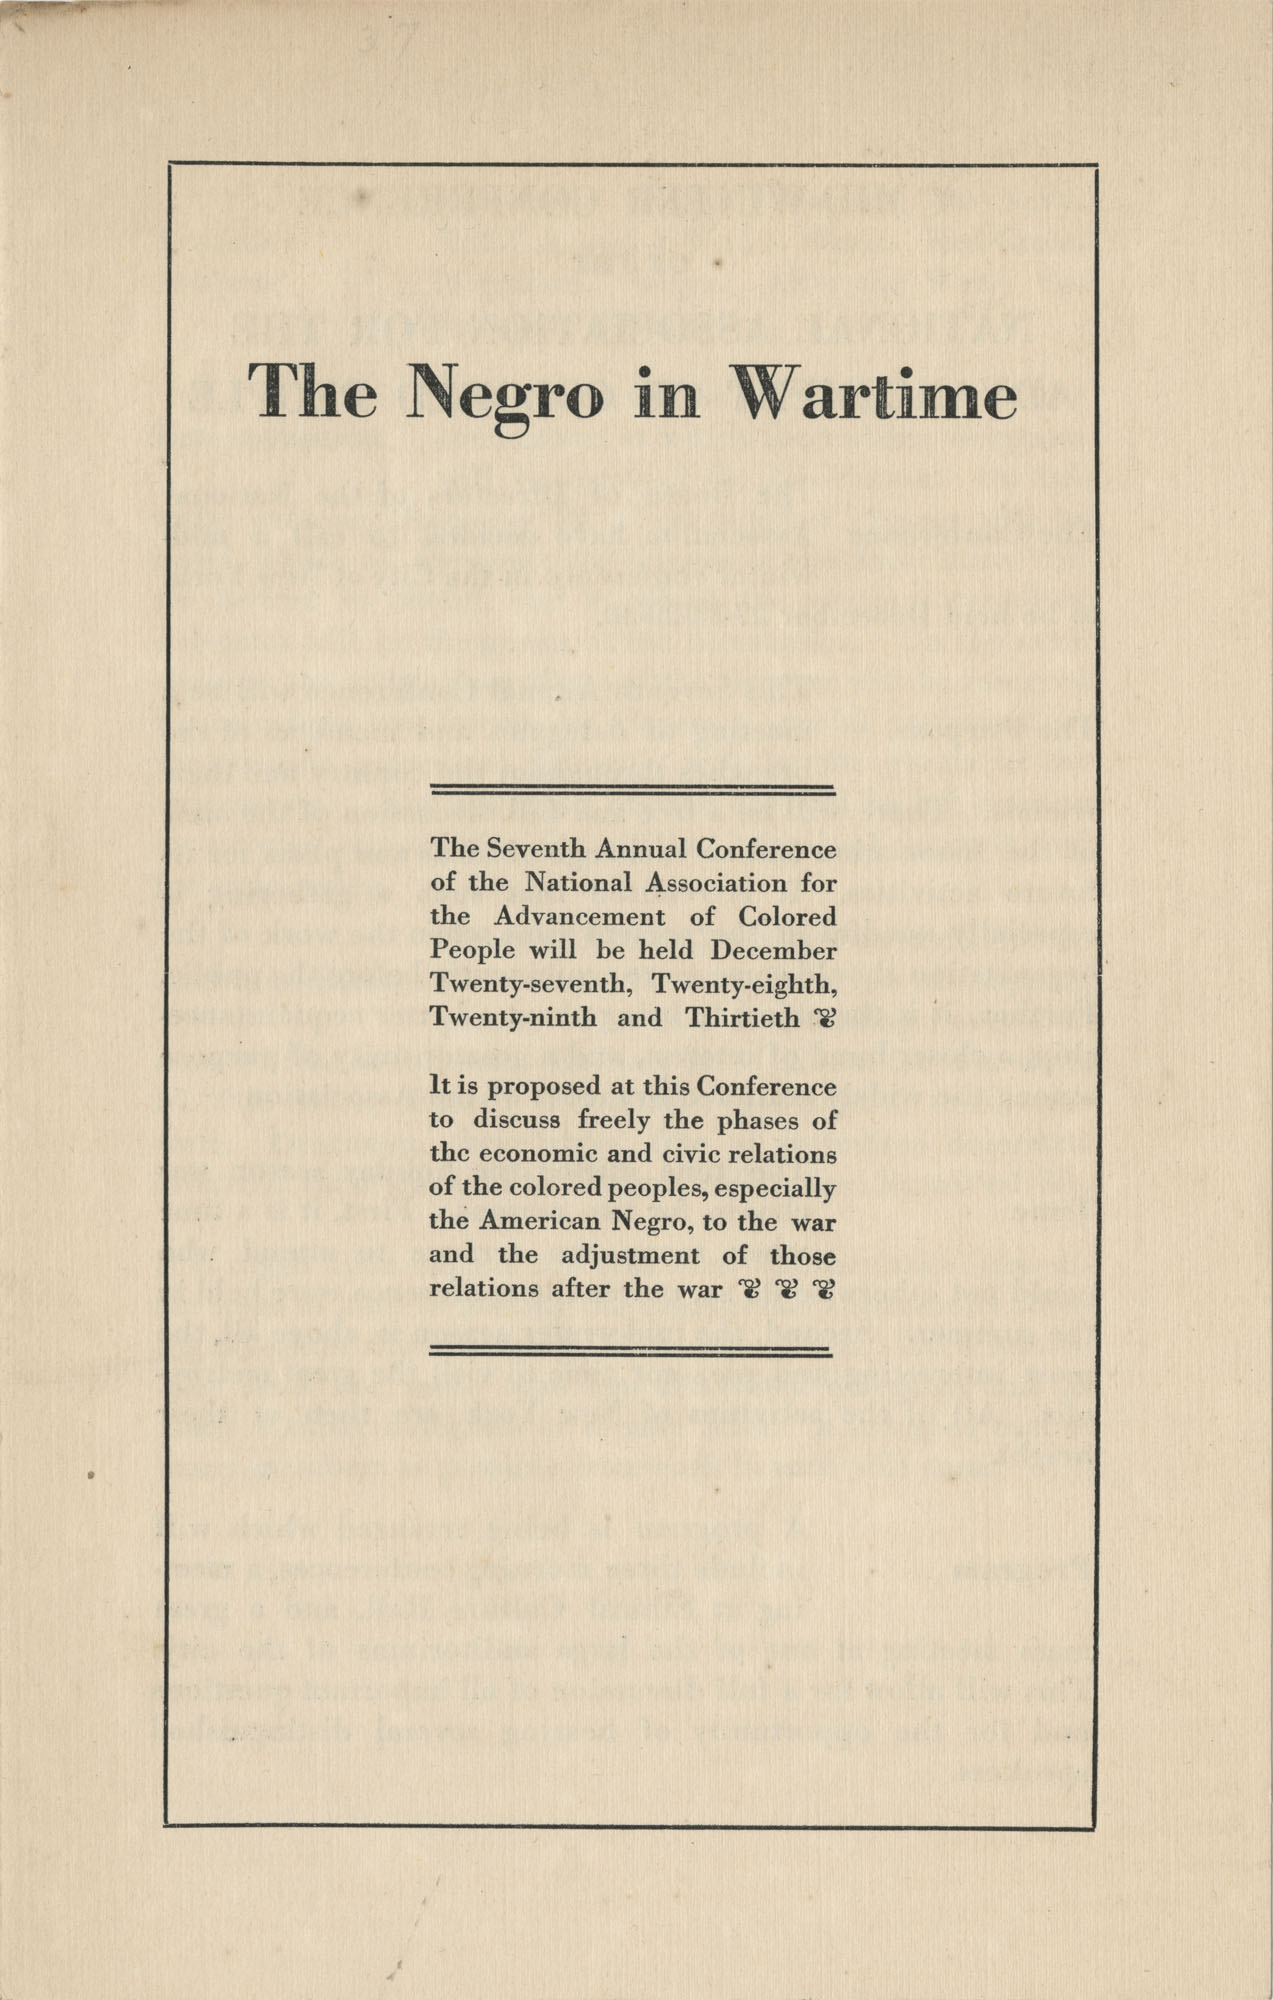 The Negro in Wartime